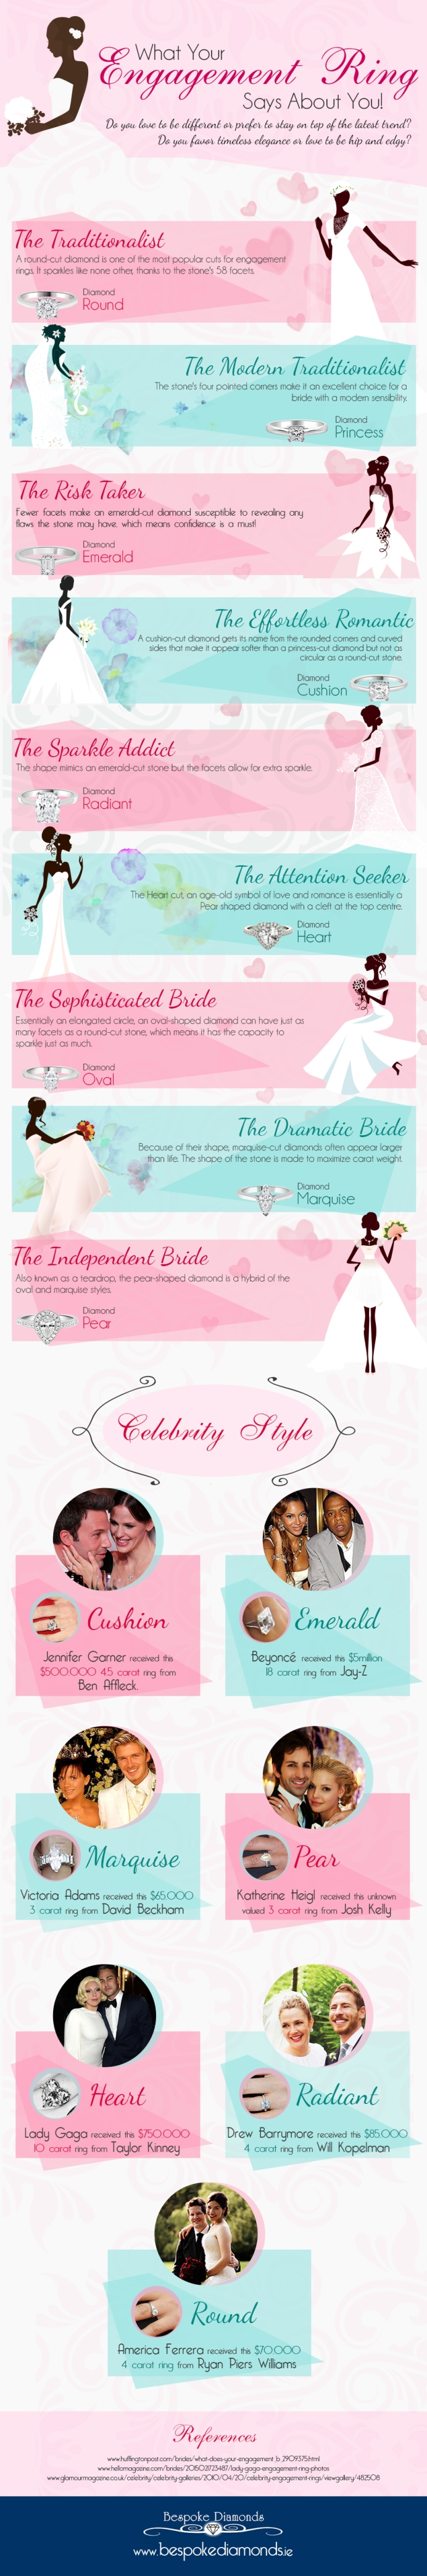 Engagement-Ring-Says-Perfect-Ring-Infographic